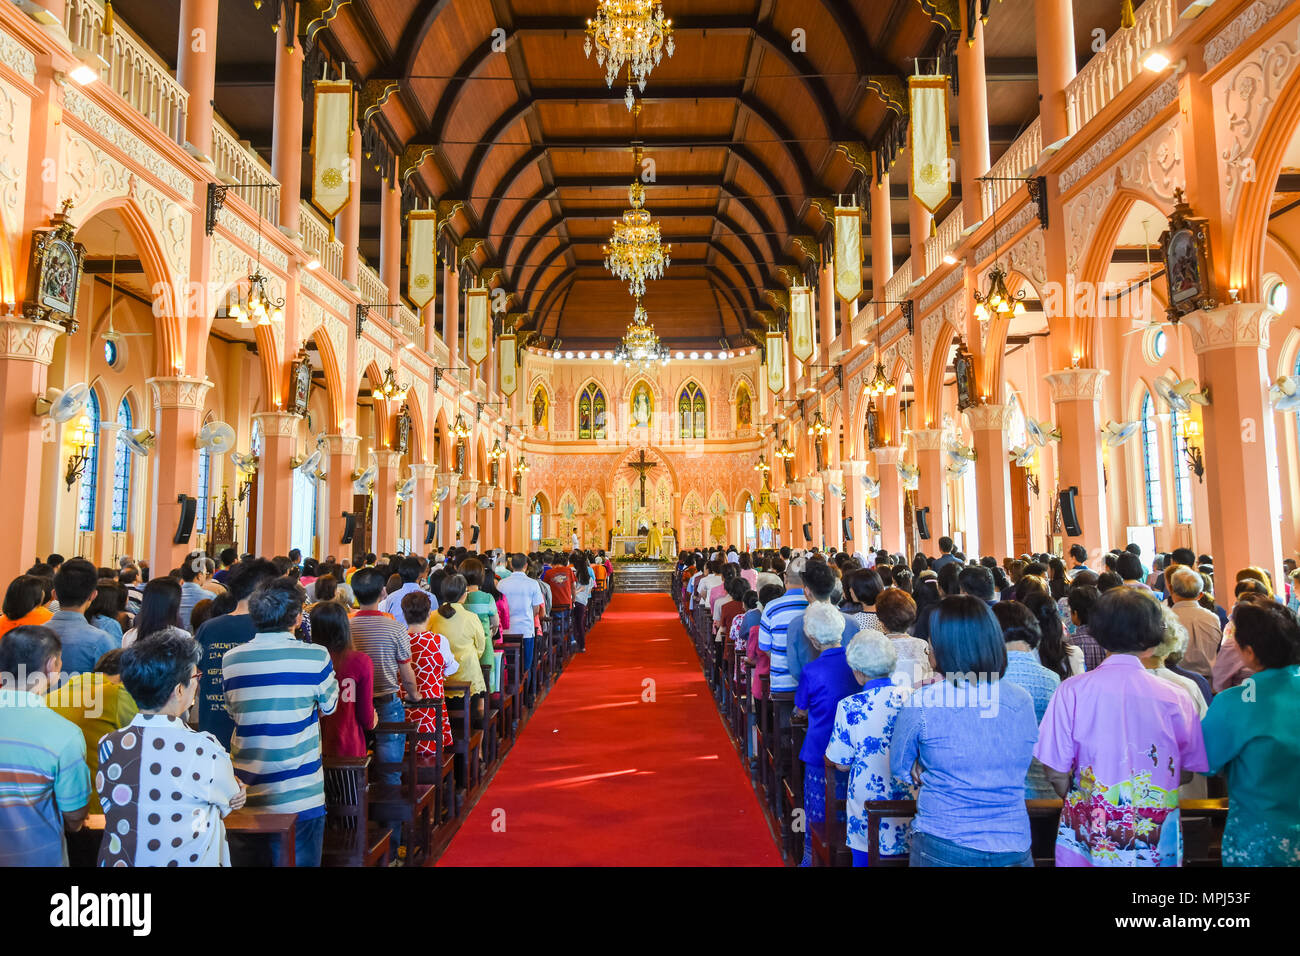 Chantaburi, Thailand - January 1, 2016: Group of pastors doing religion ceremony  while Chistian people standing to attend religion ceremony in occasi - Stock Image